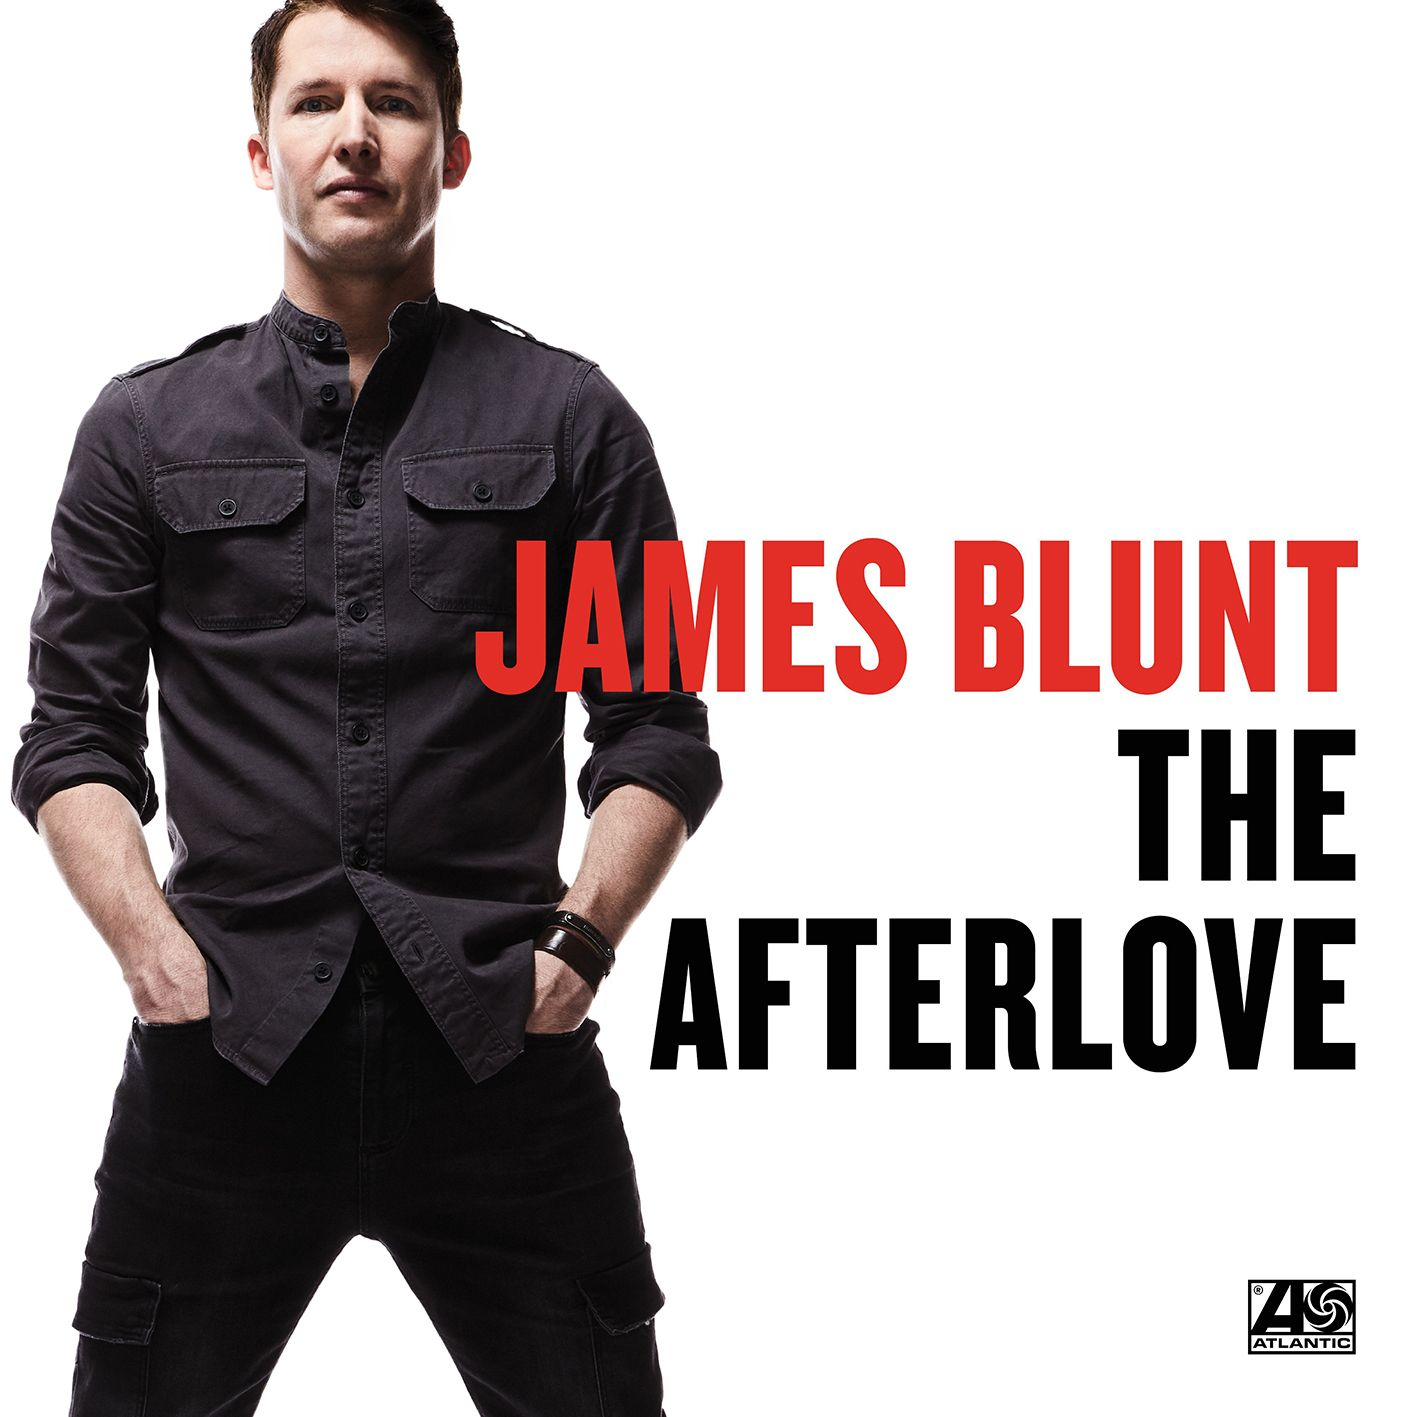 James Blunt - The Afterlove album cover